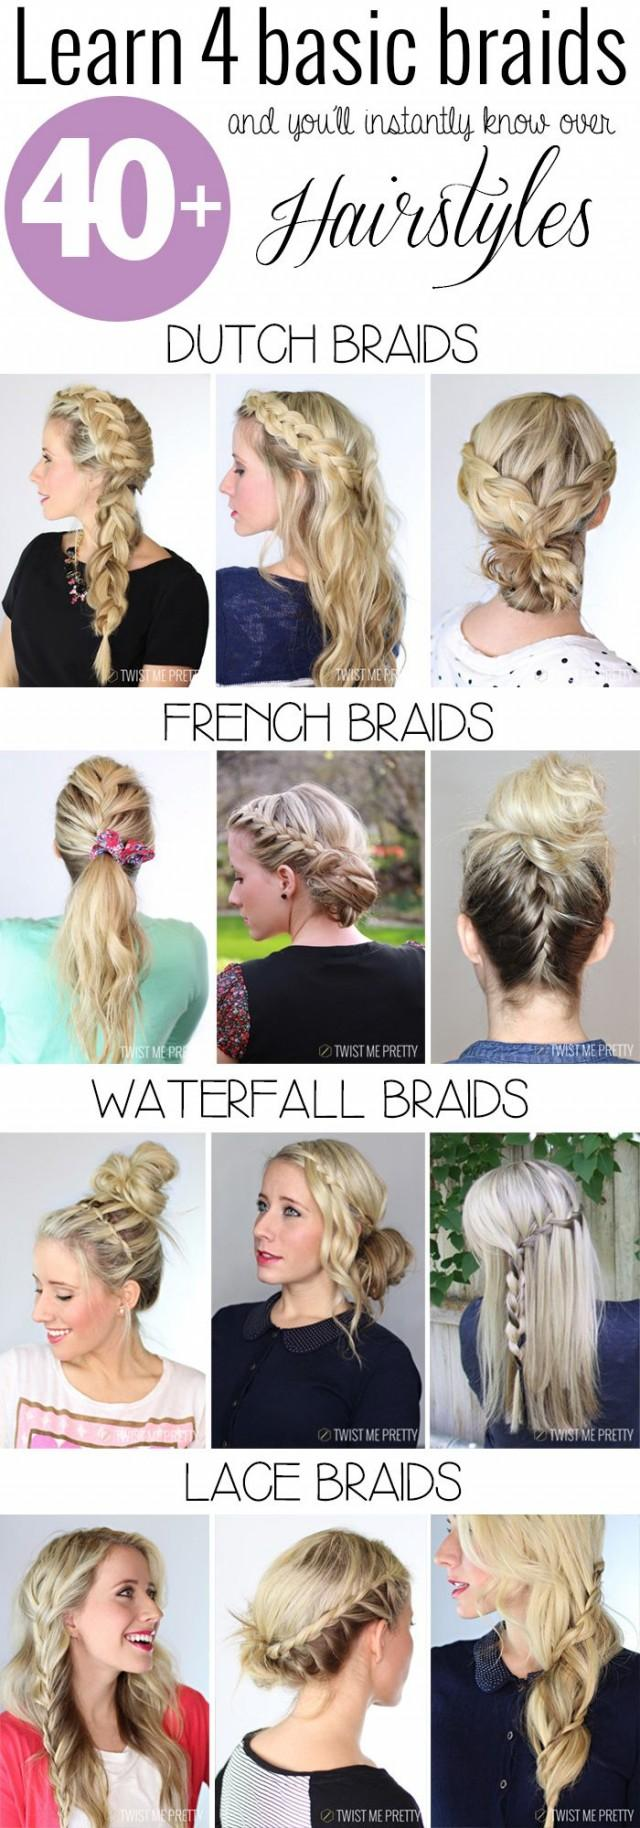 5 pretty braided hairstyles to